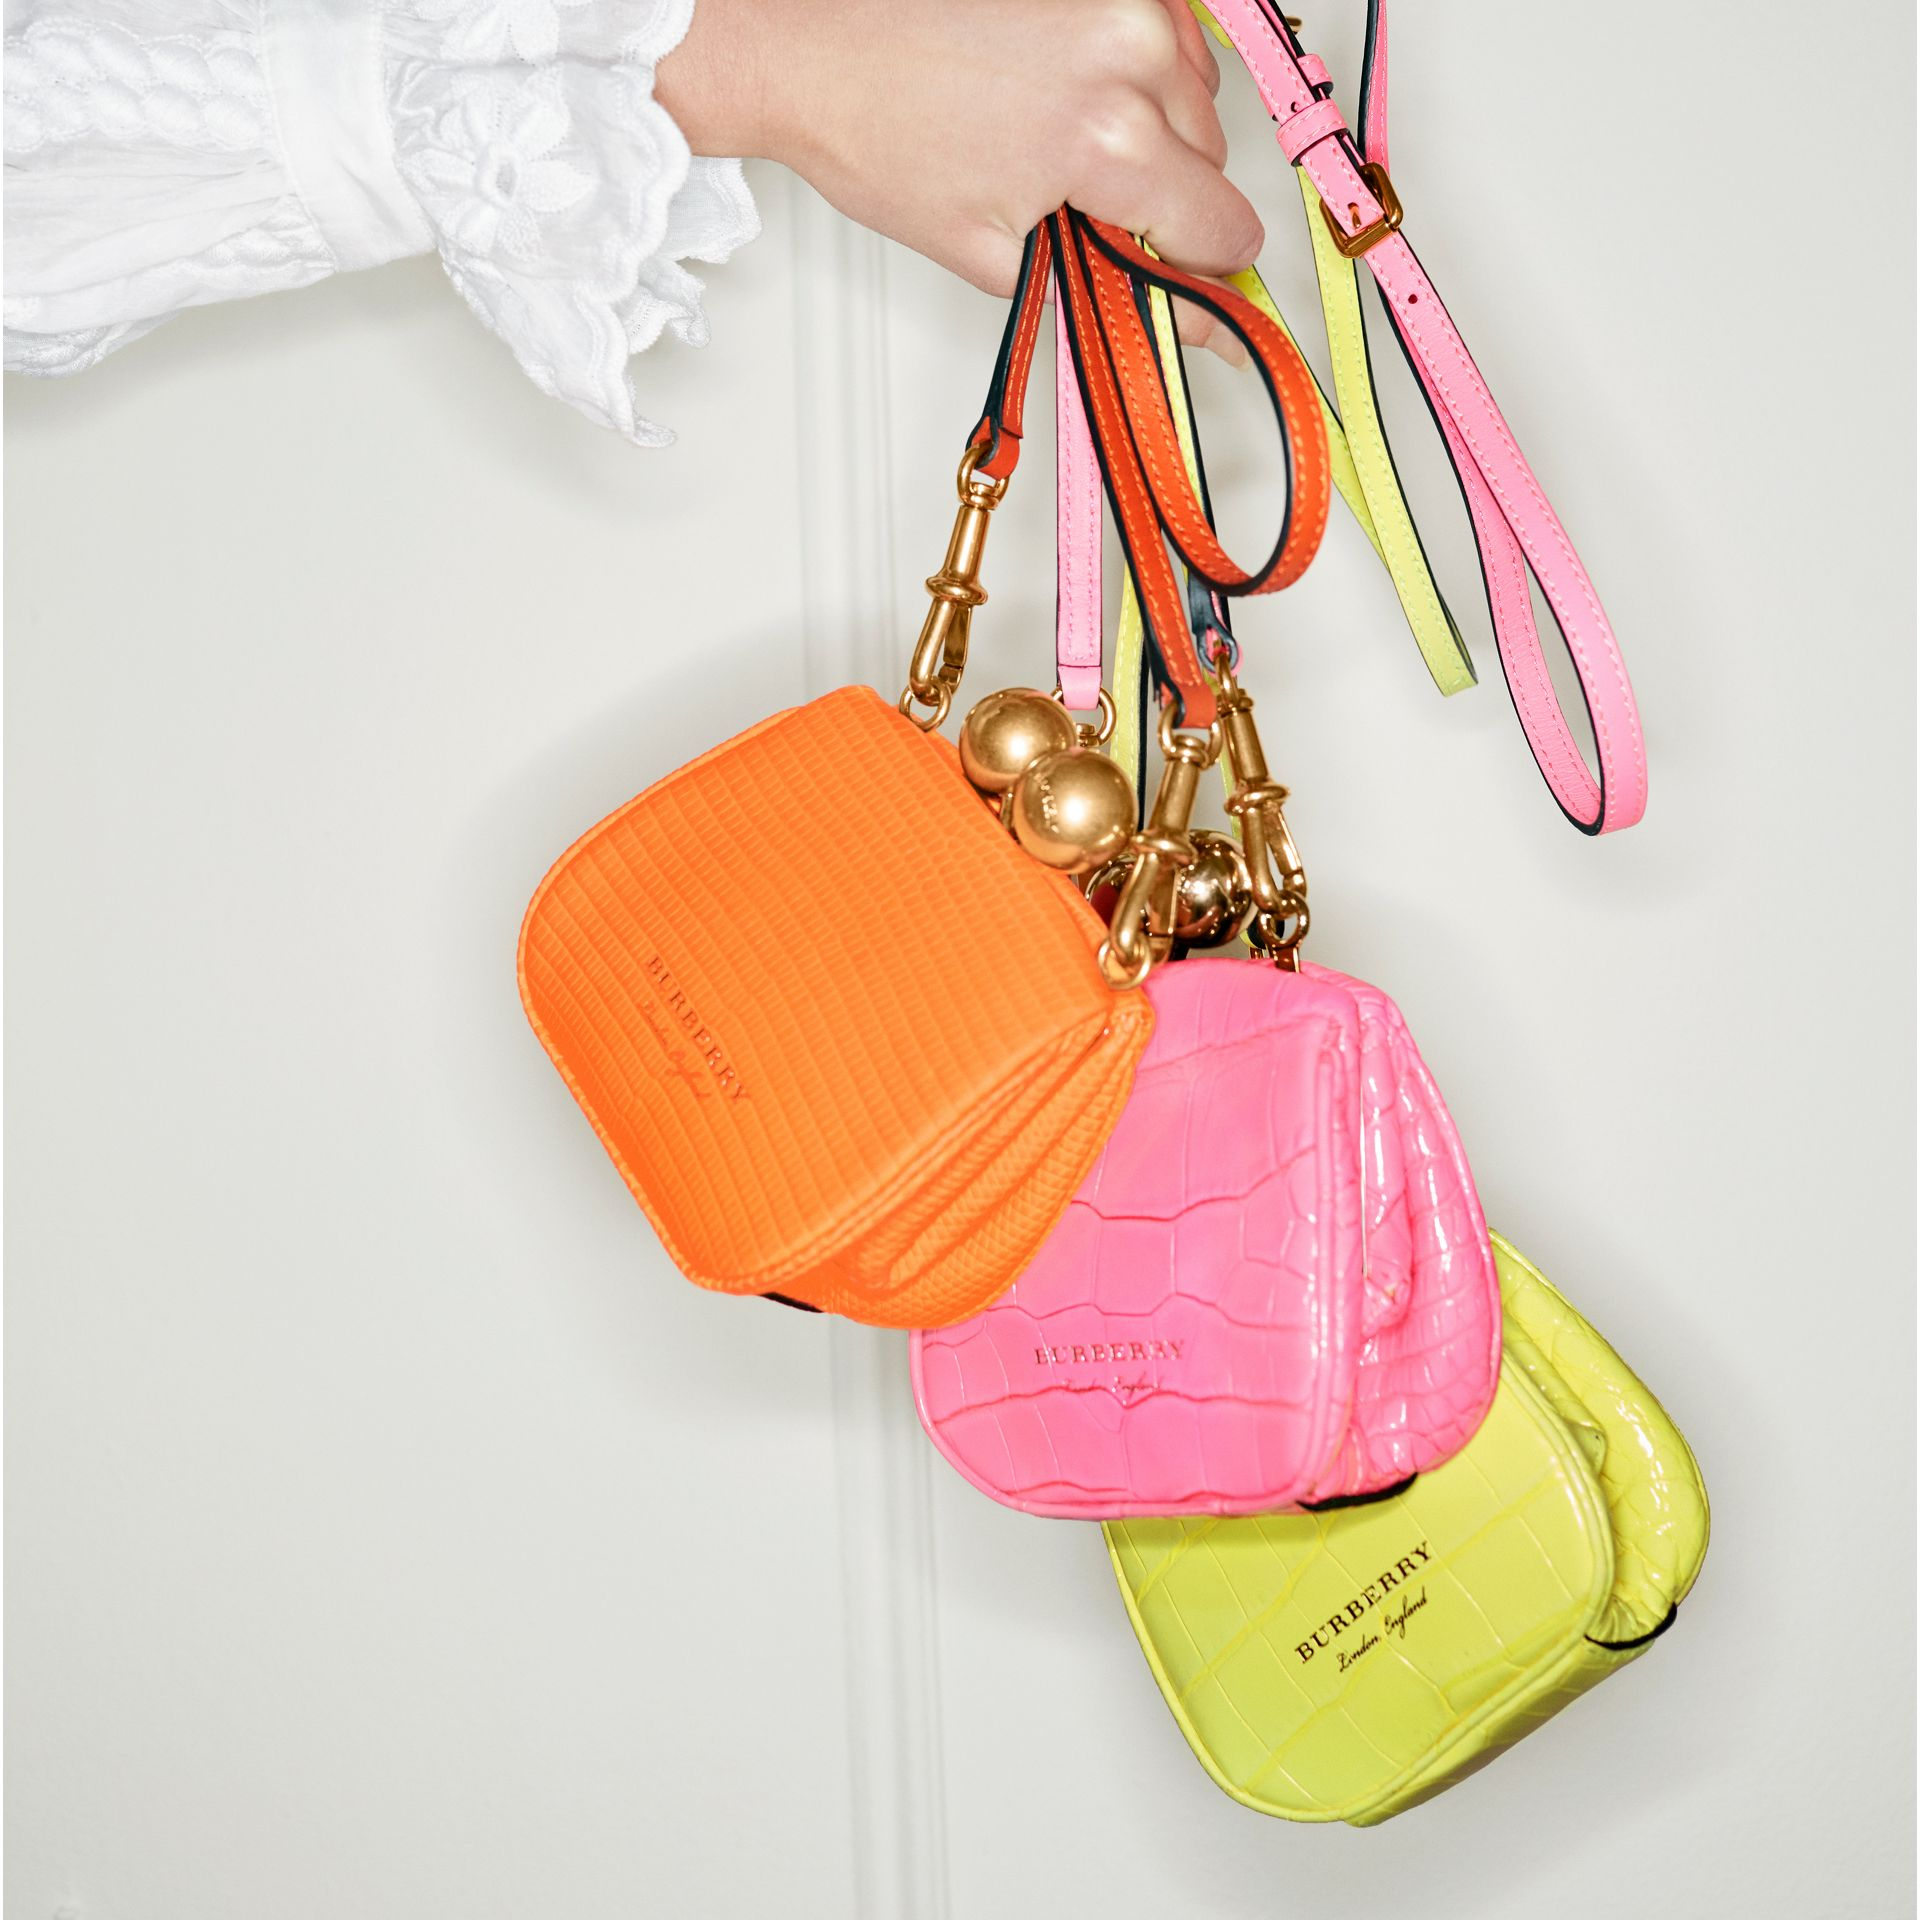 Mini Alligator Frame Bag in Neon Pink - Women | Burberry Canada - gallery image 6